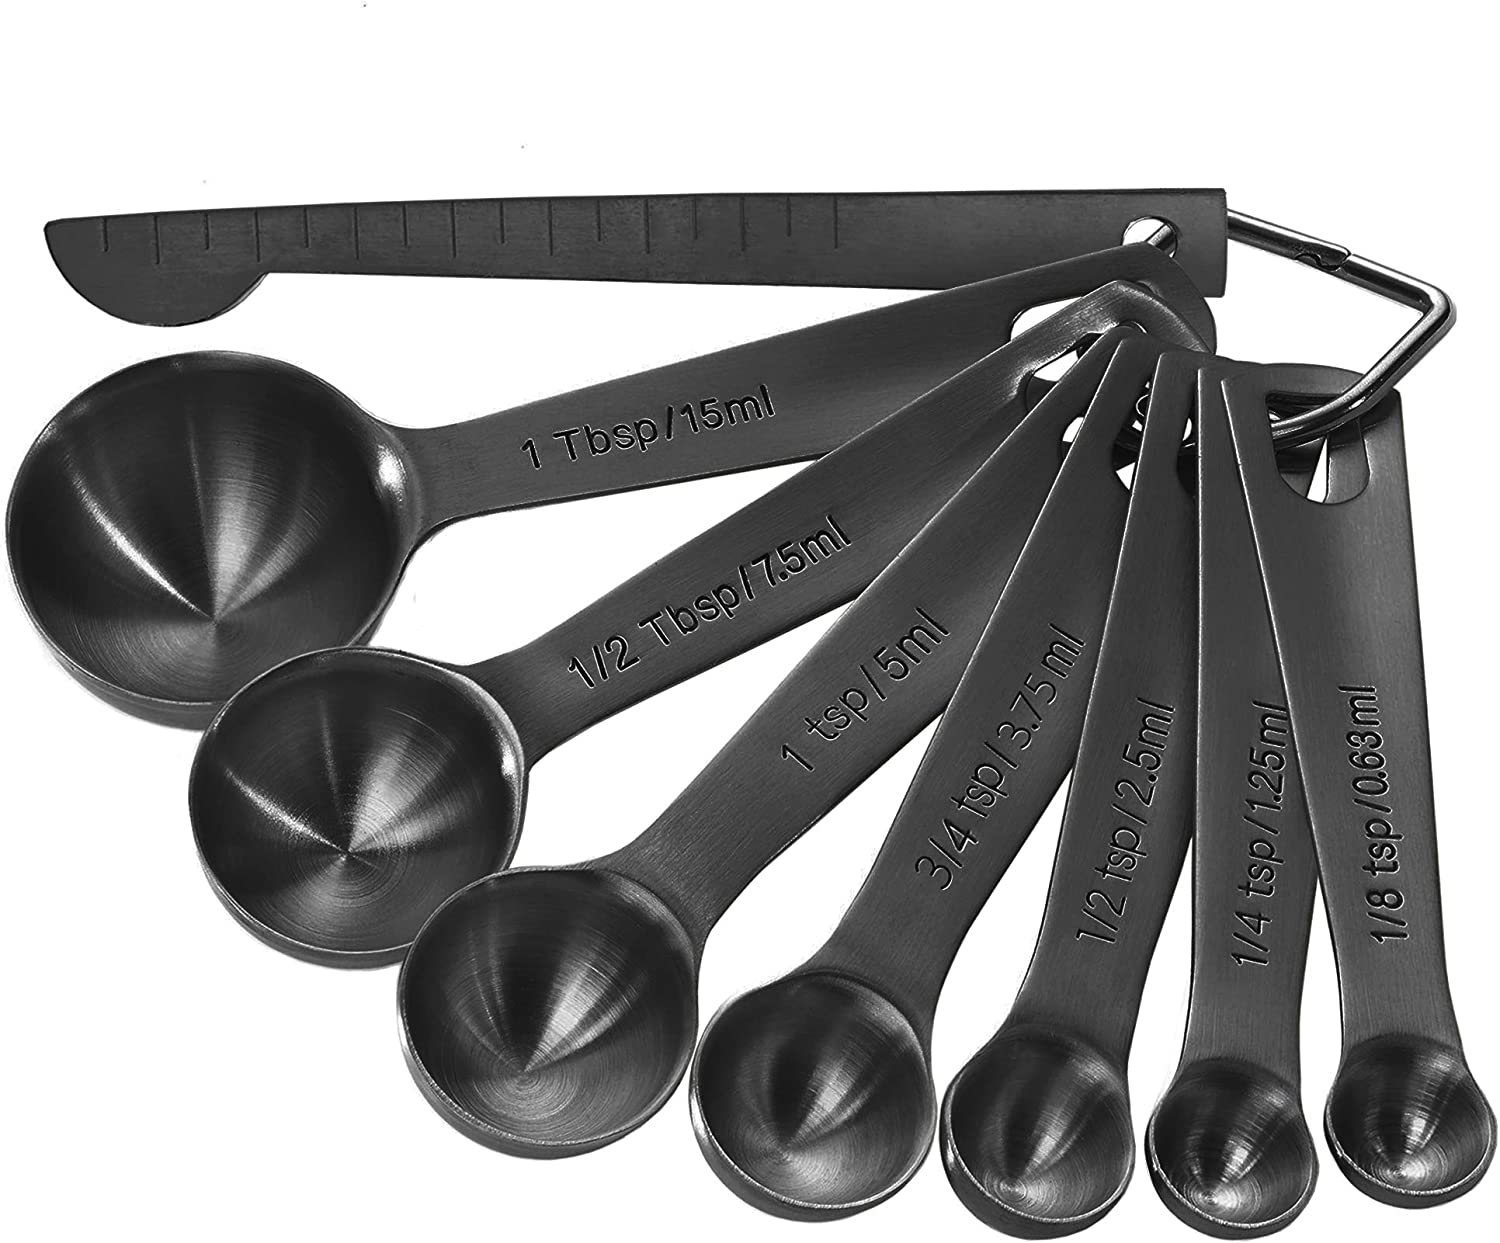 Black Measuring Spoons Heavy Duty 18/8 Stainless Steel Measuring Set of 8 with Leveler includes: 1/8 tsp, 1/4 tsp, 1/2 tsp, 3/4 tsp, 1 tsp, 1/2 tbsp, 1 tbsp for Dry and Liquid Ingredients by Homestia: Kitchen & Dining